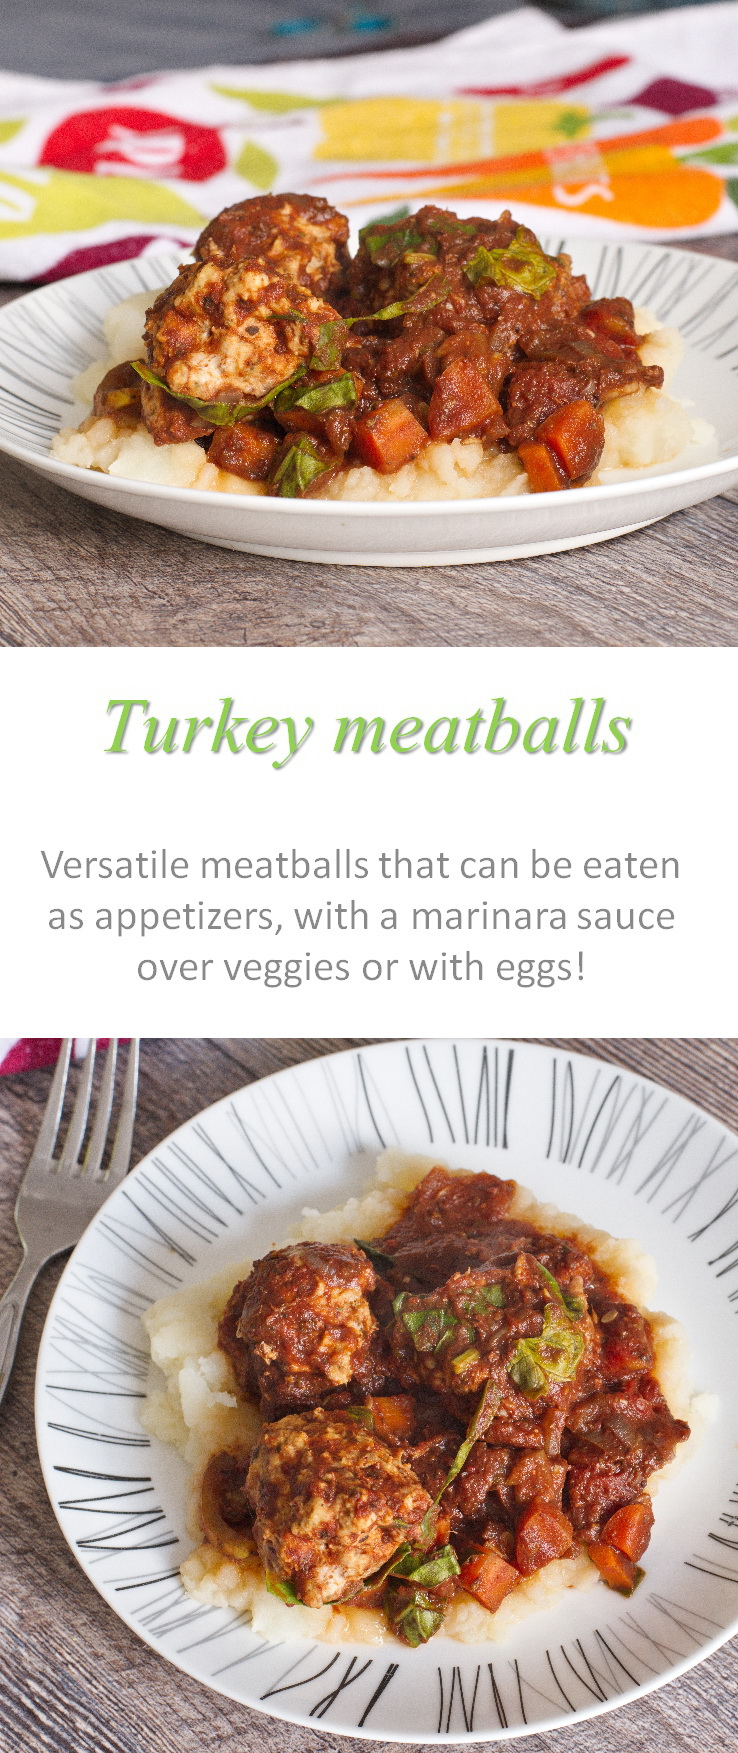 A Whole30 compliant, comforting meal of turkey meatballs in marinara sauce, full of flavor and veggies - great for any season! #meatballs